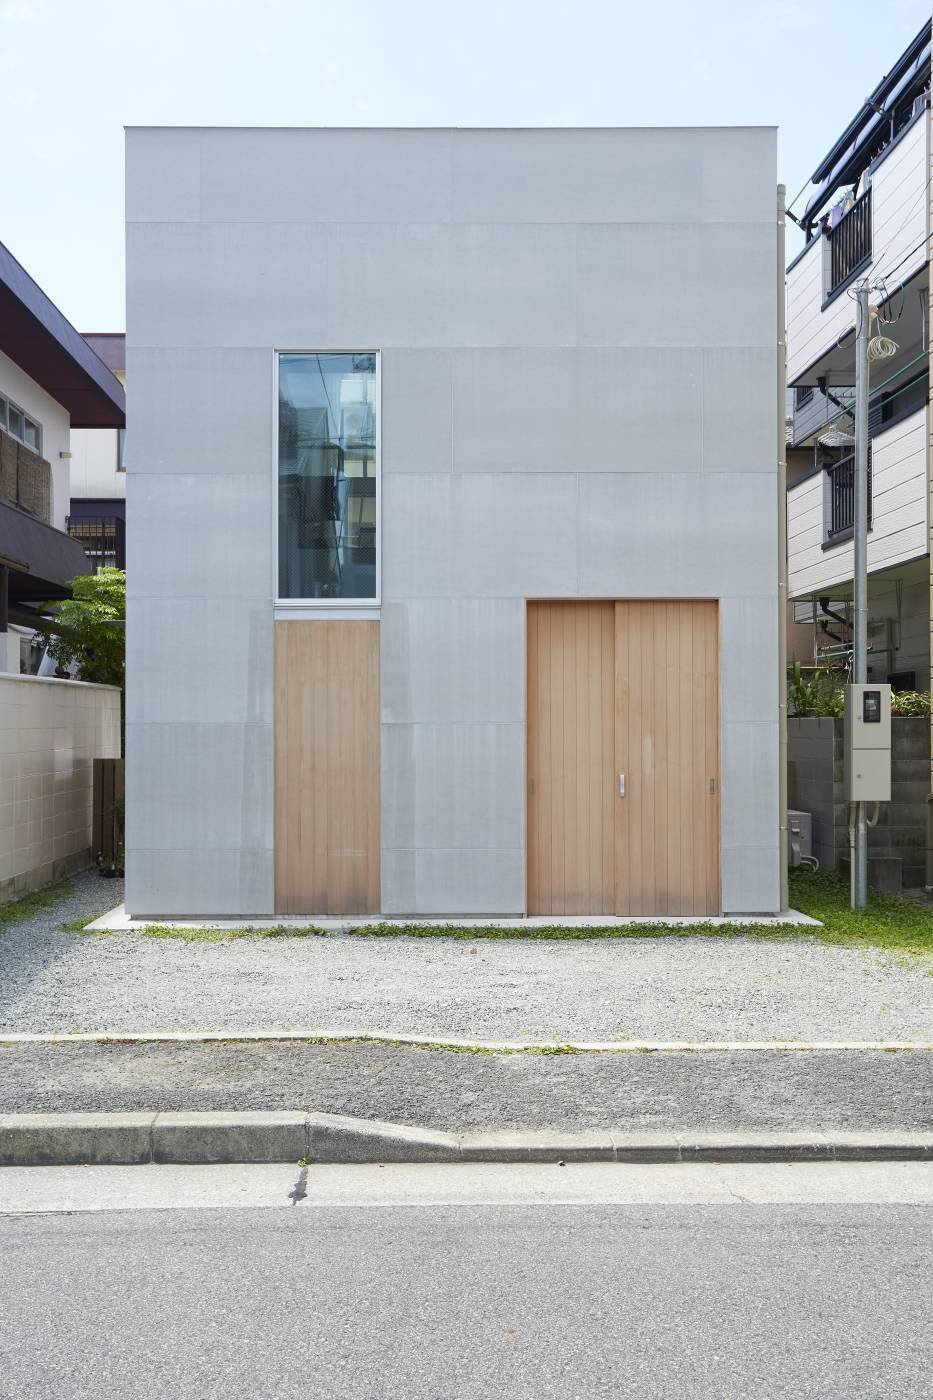 Unabashedly Strange Houses in Japan from Residence and Playground by Sota Matsuura Architects